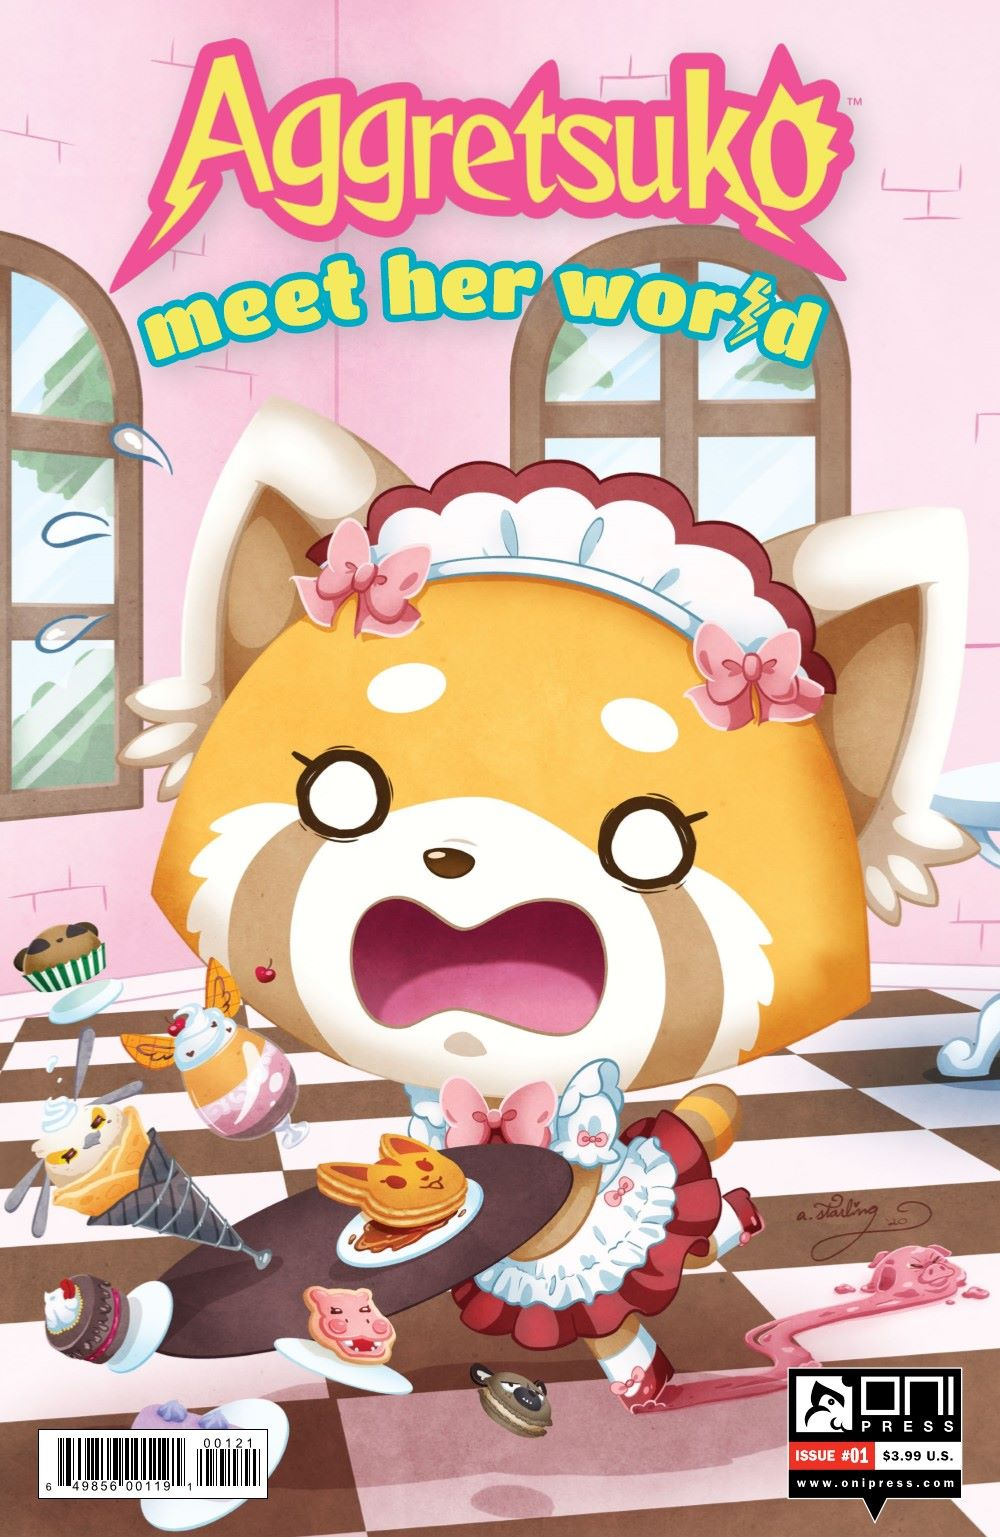 AGGRETSUKO-MHW-1-MARKETING-02 ComicList Previews: AGGRETSUKO MEET HER WORLD #1